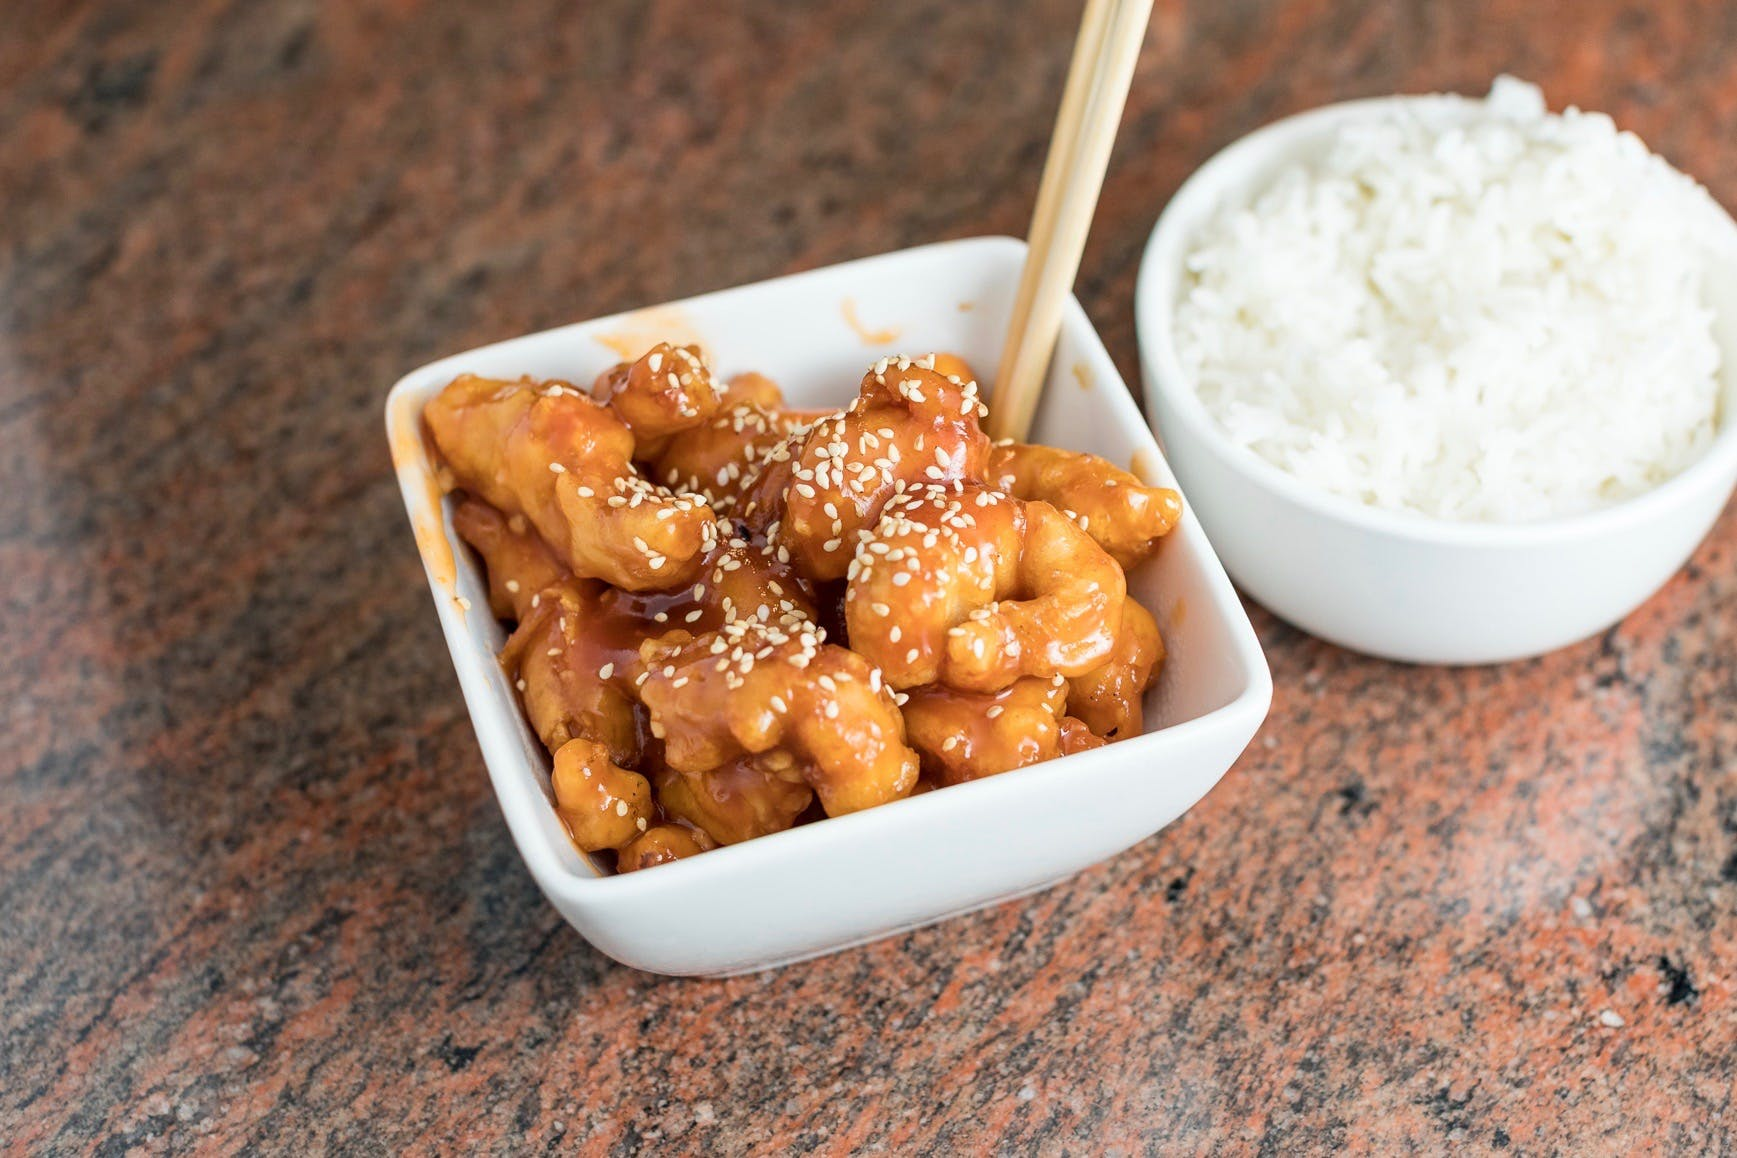 Sesame Chicken from Shanghai Bistro in Eau Claire, WI